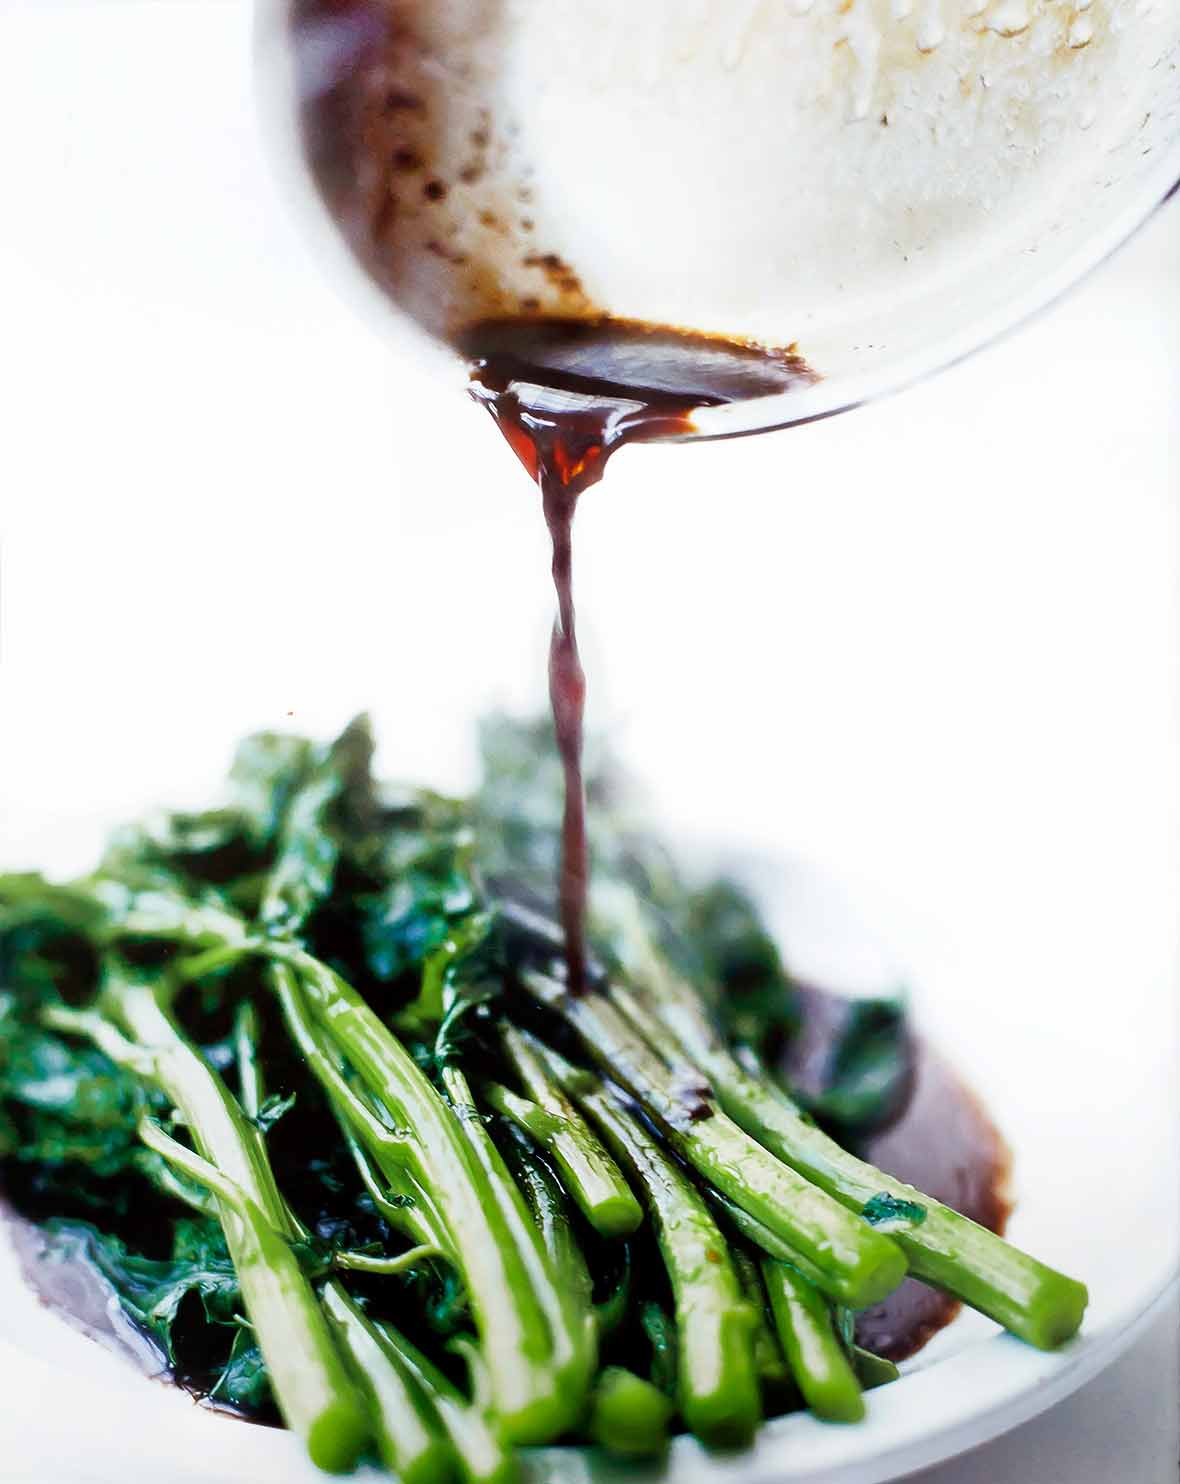 A white plate of broccoli rabe with balsamic brown butter being poured on top